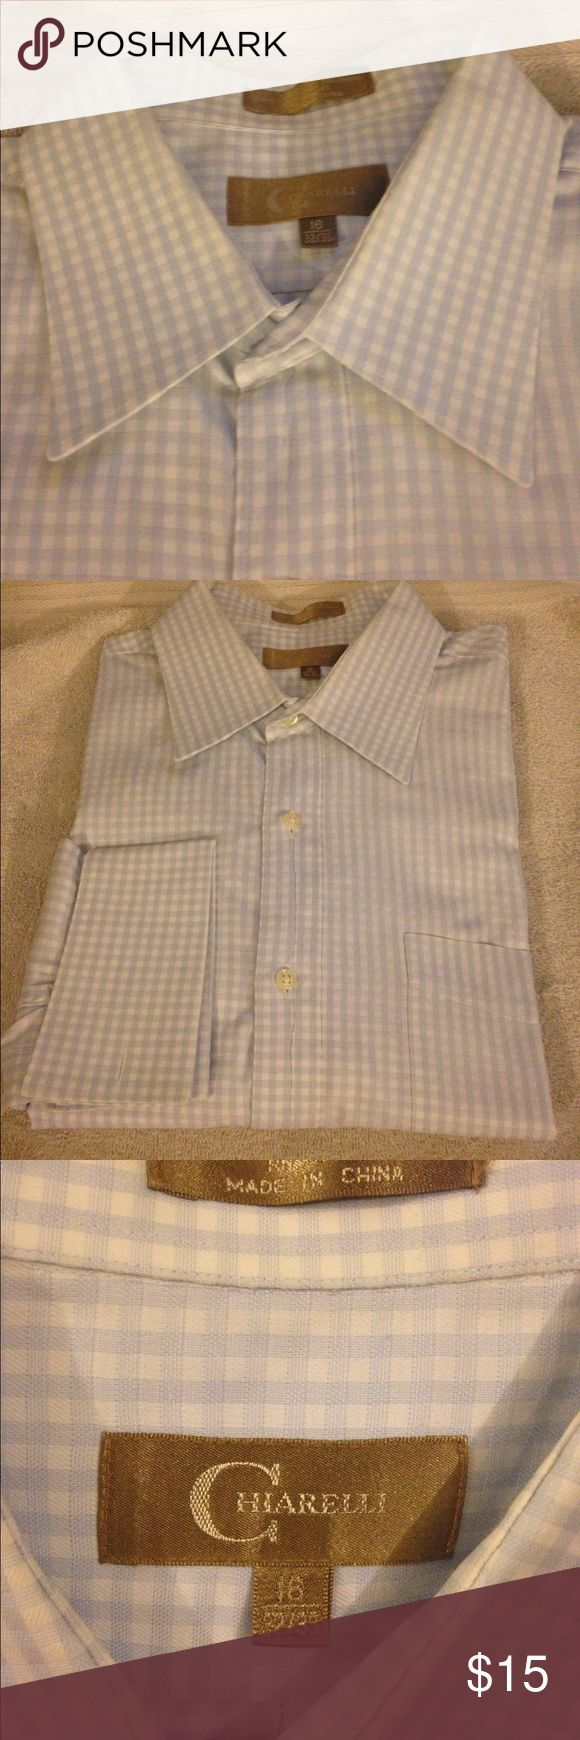 Chiarelli Blue & White Gingham French Cuff Shirt Chiarelli Blue and White Gingham French Cuff Dress Shirt size 16 32/33! Great condition! Please make reasonable offers and bundle! Ask questions! :) Chiarelli Shirts Dress Shirts